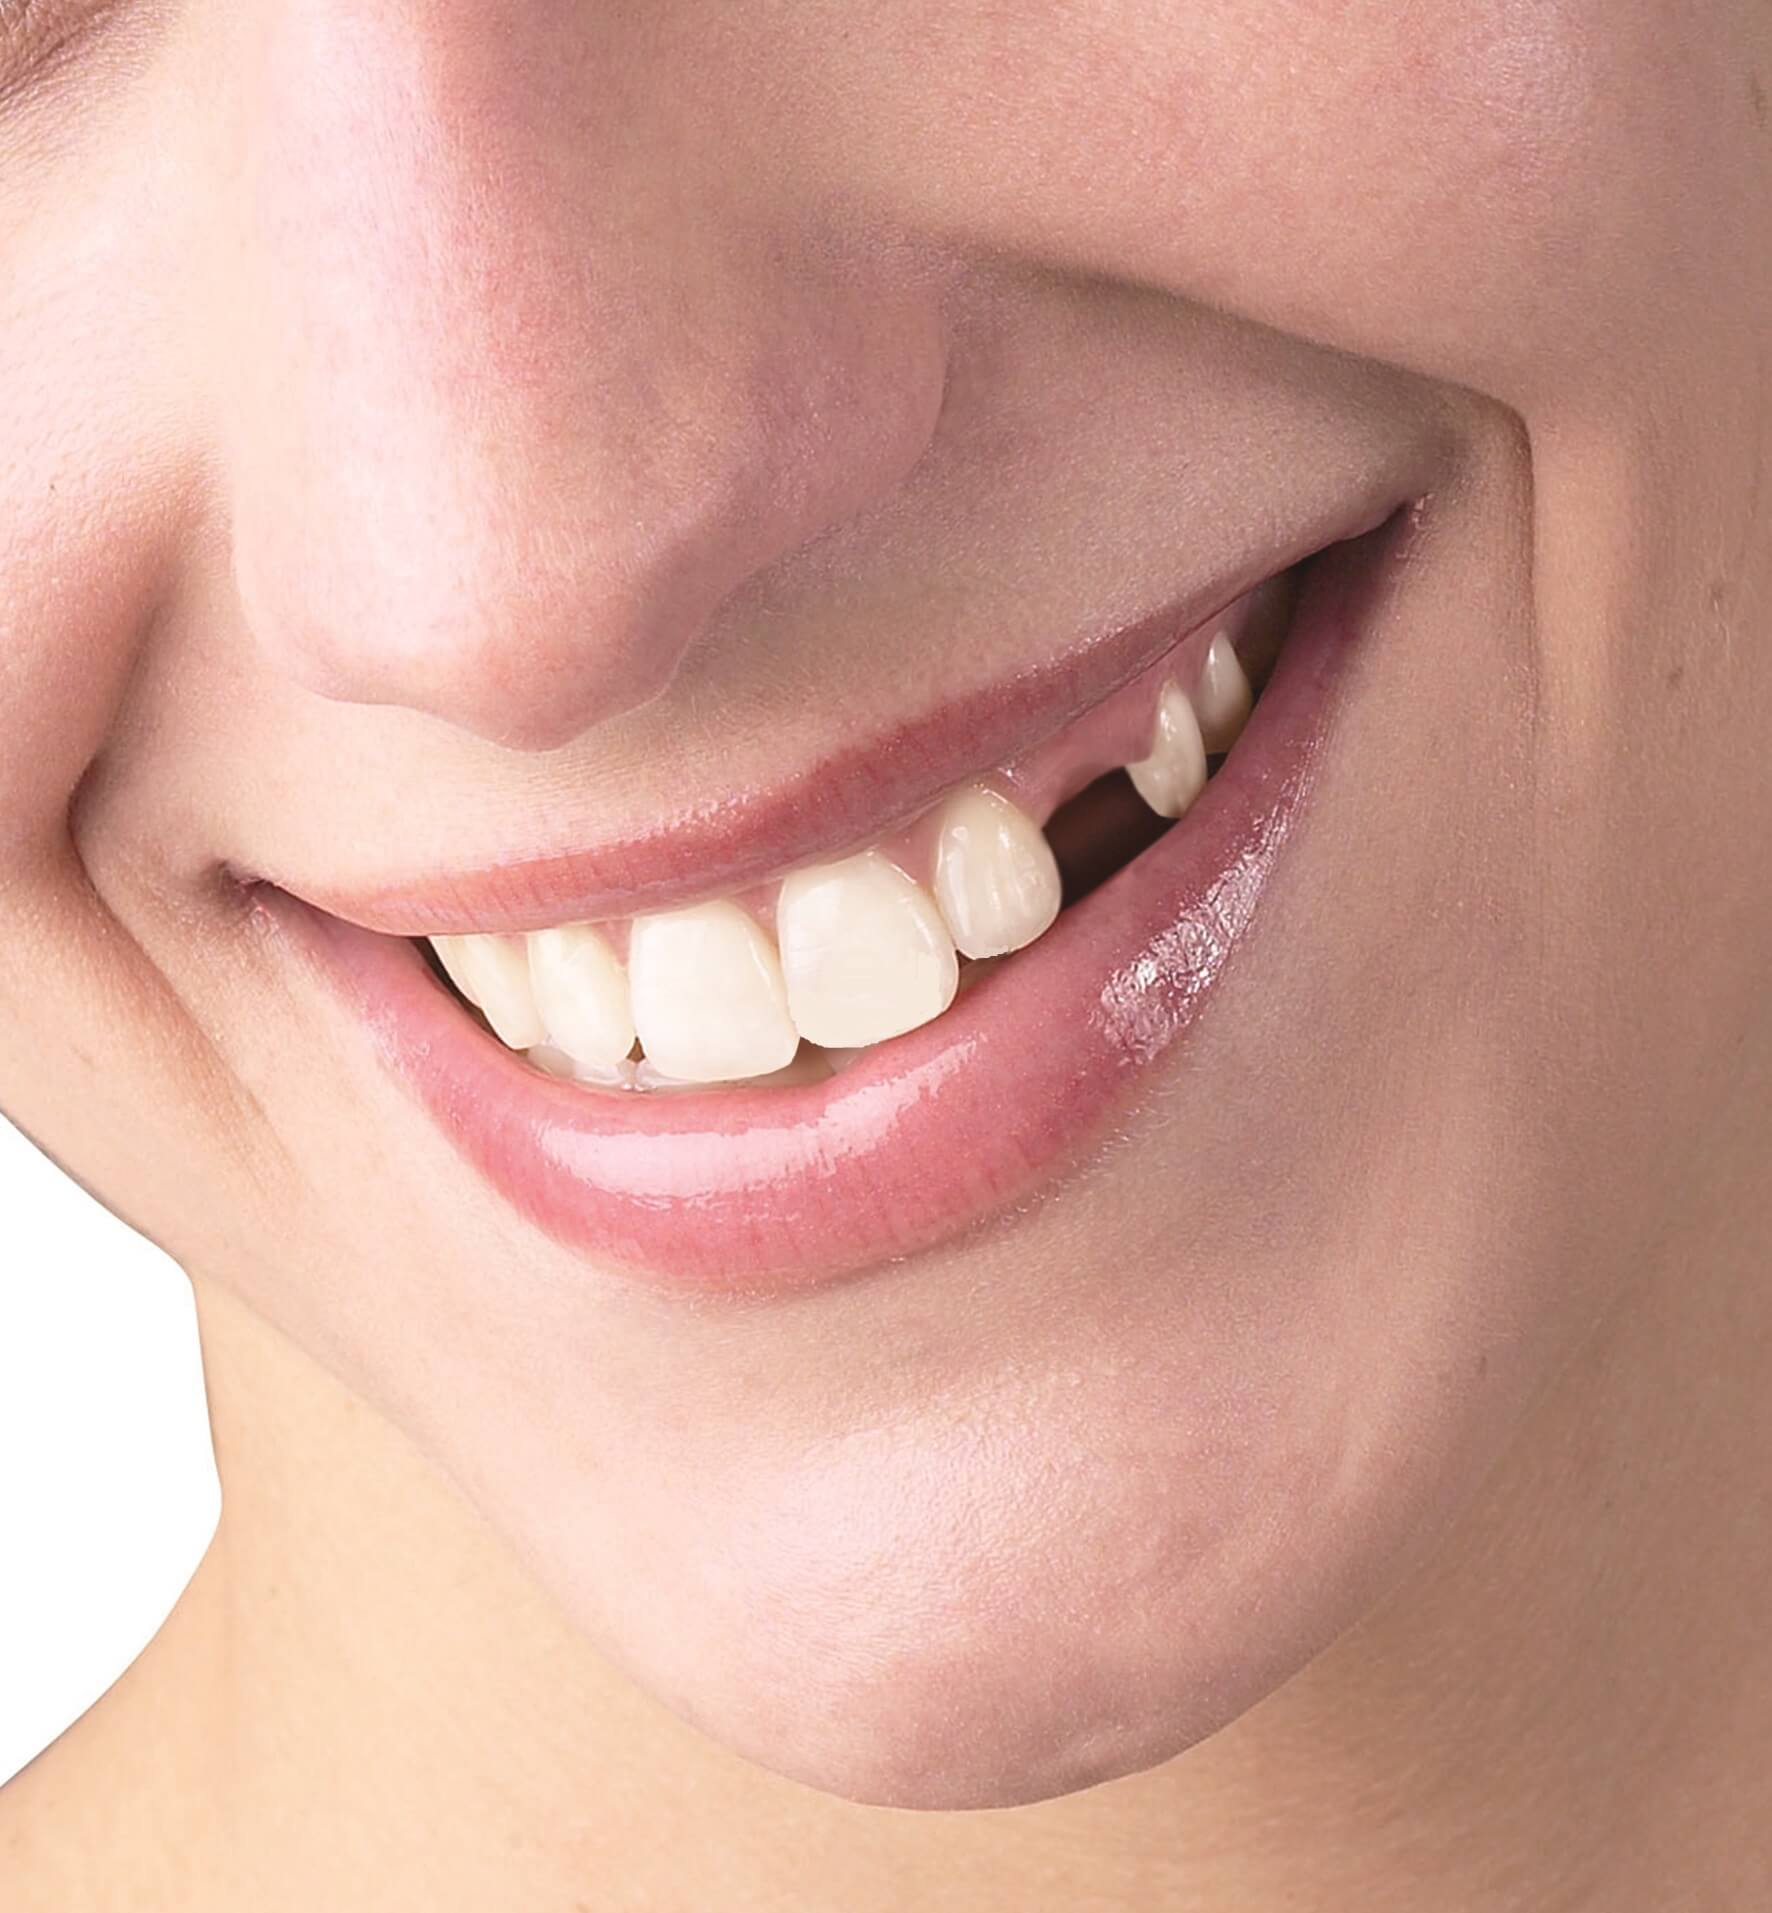 reasons for tooth loss in adults